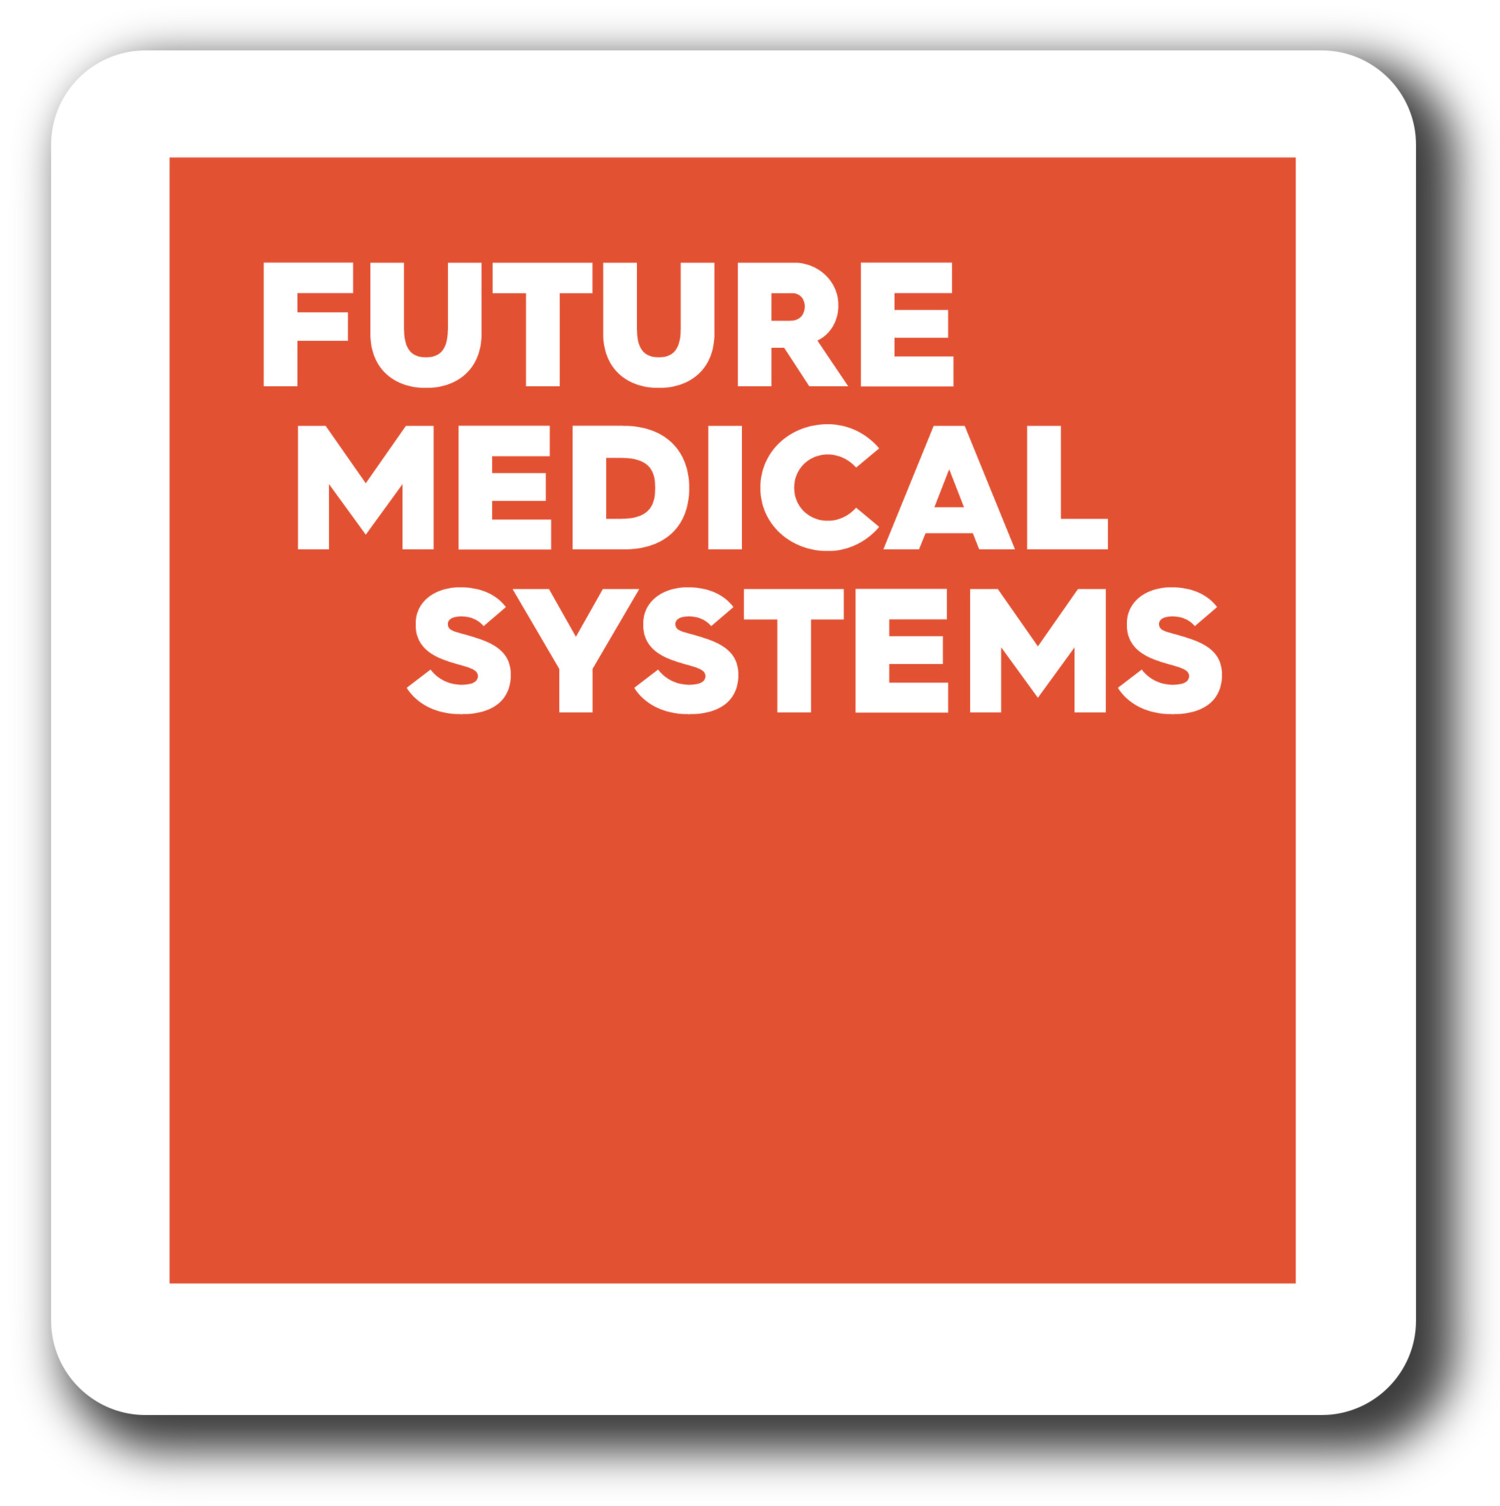 Future Medical Systems